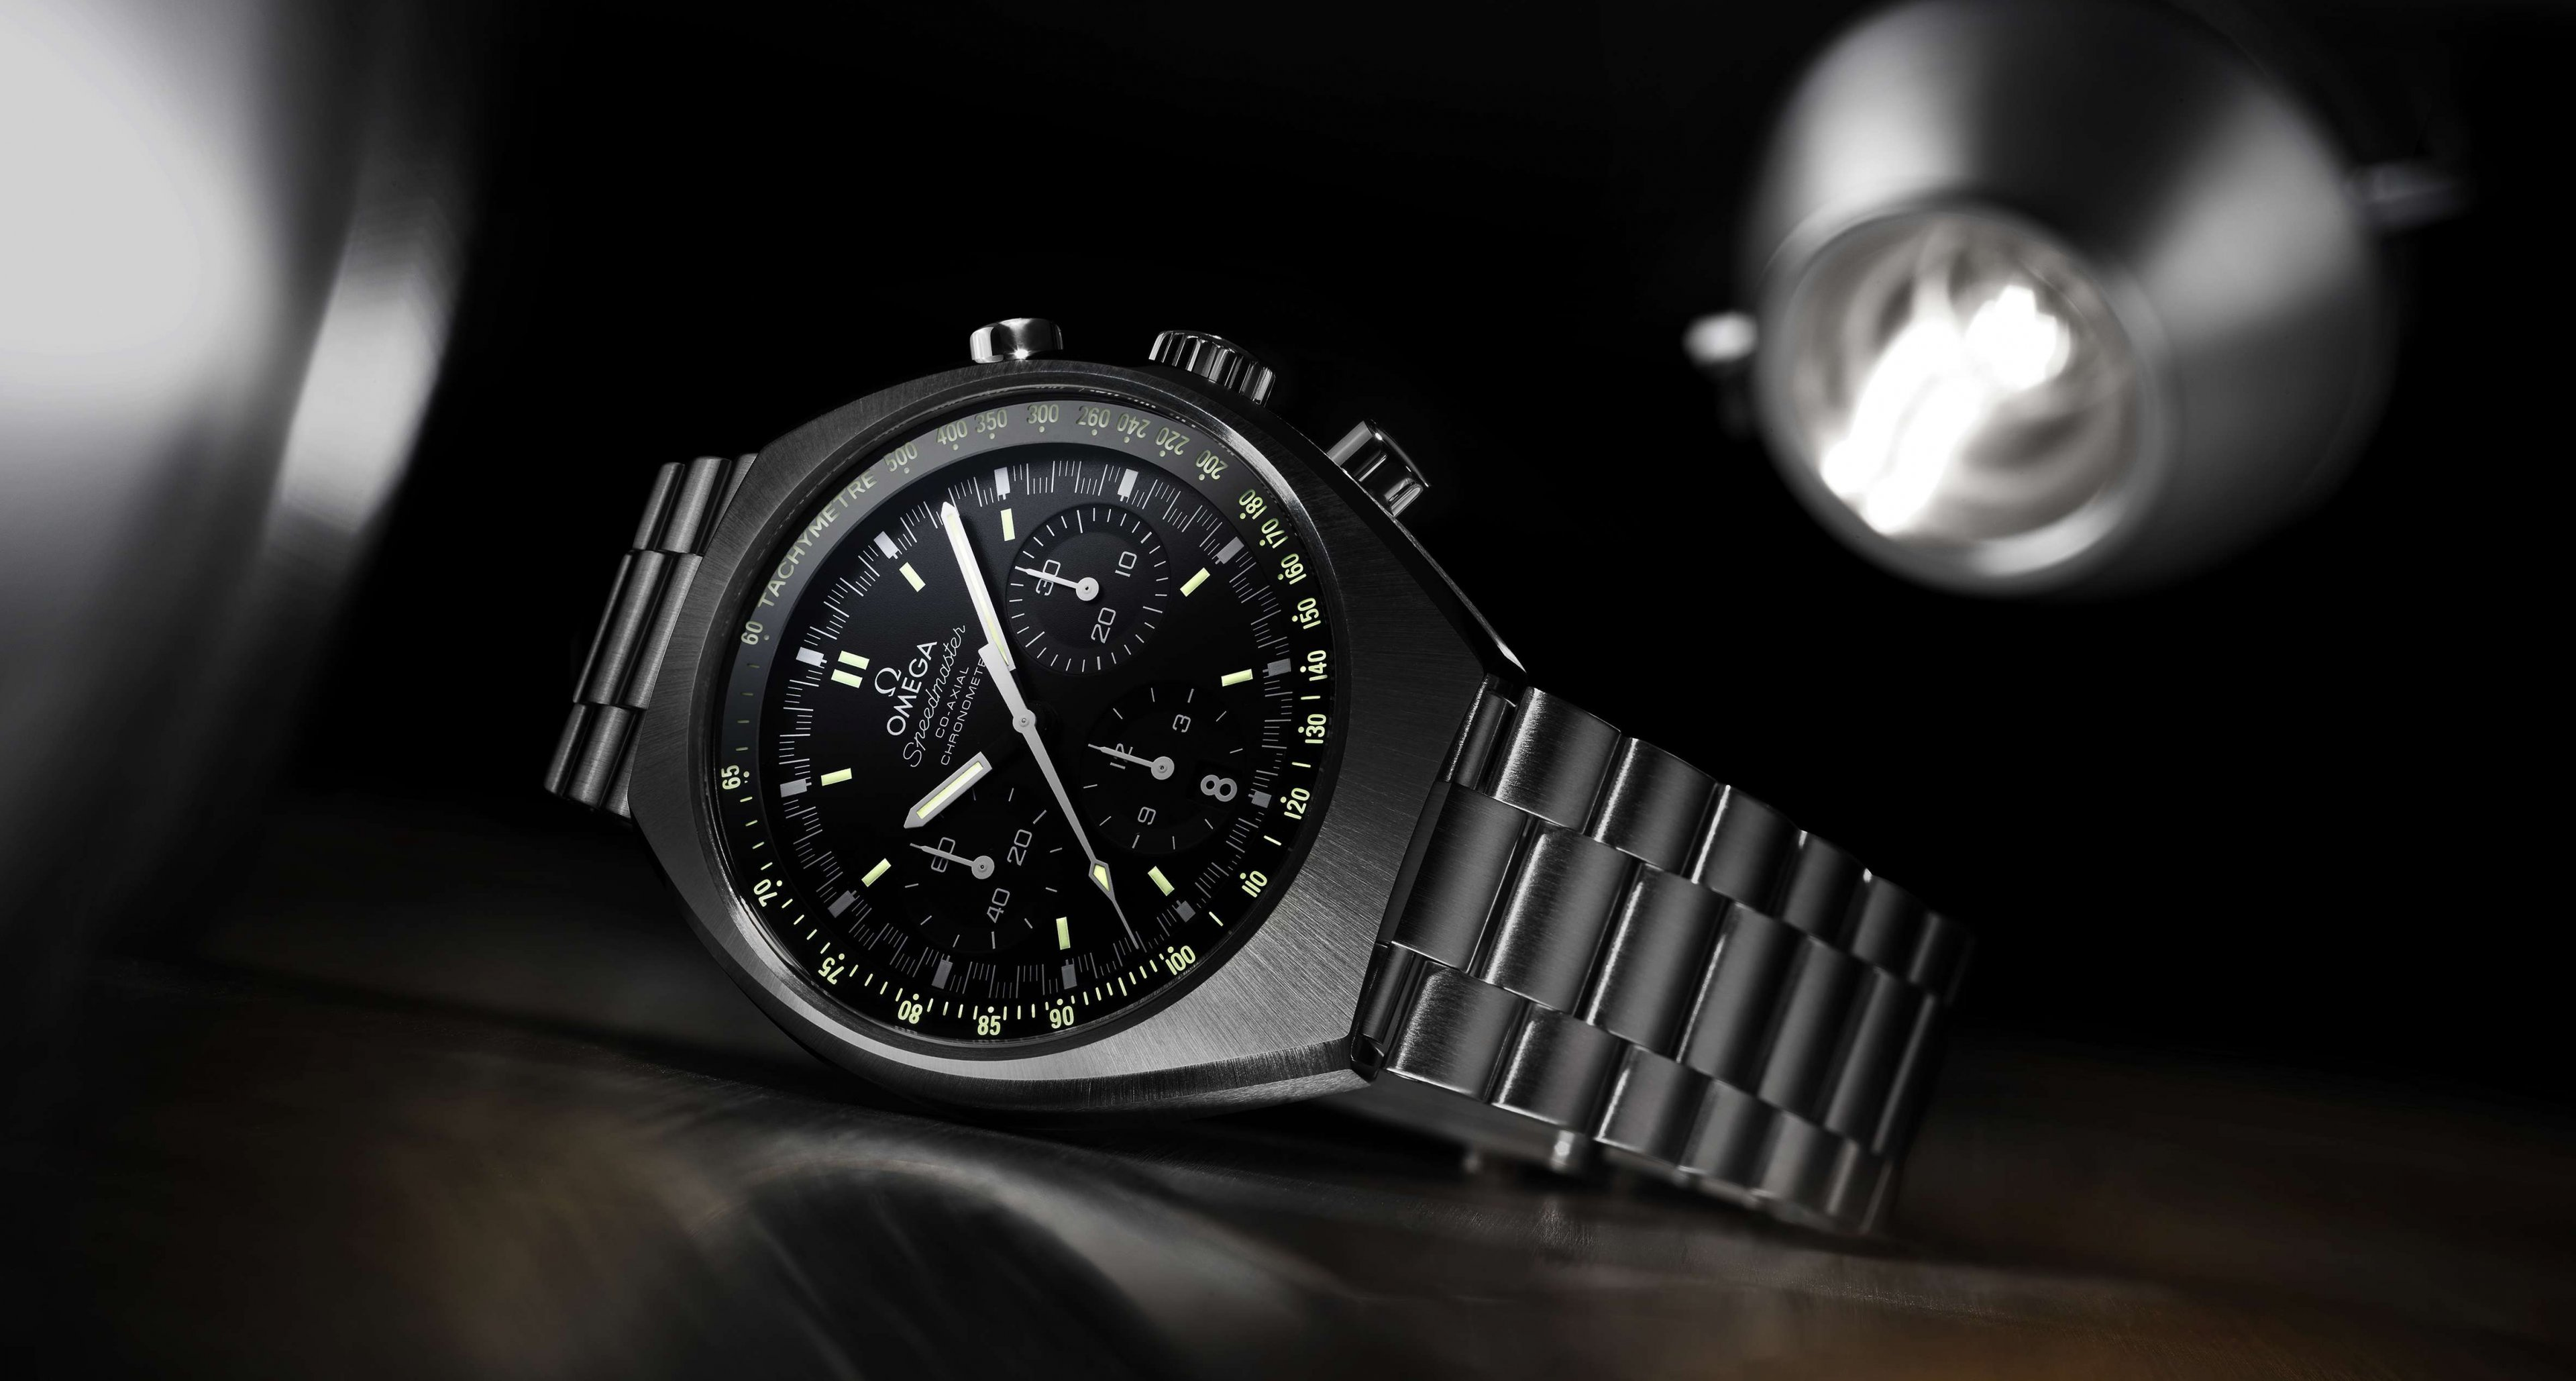 Omega Speedmaster MK II: To be presented at the Basel World 2014